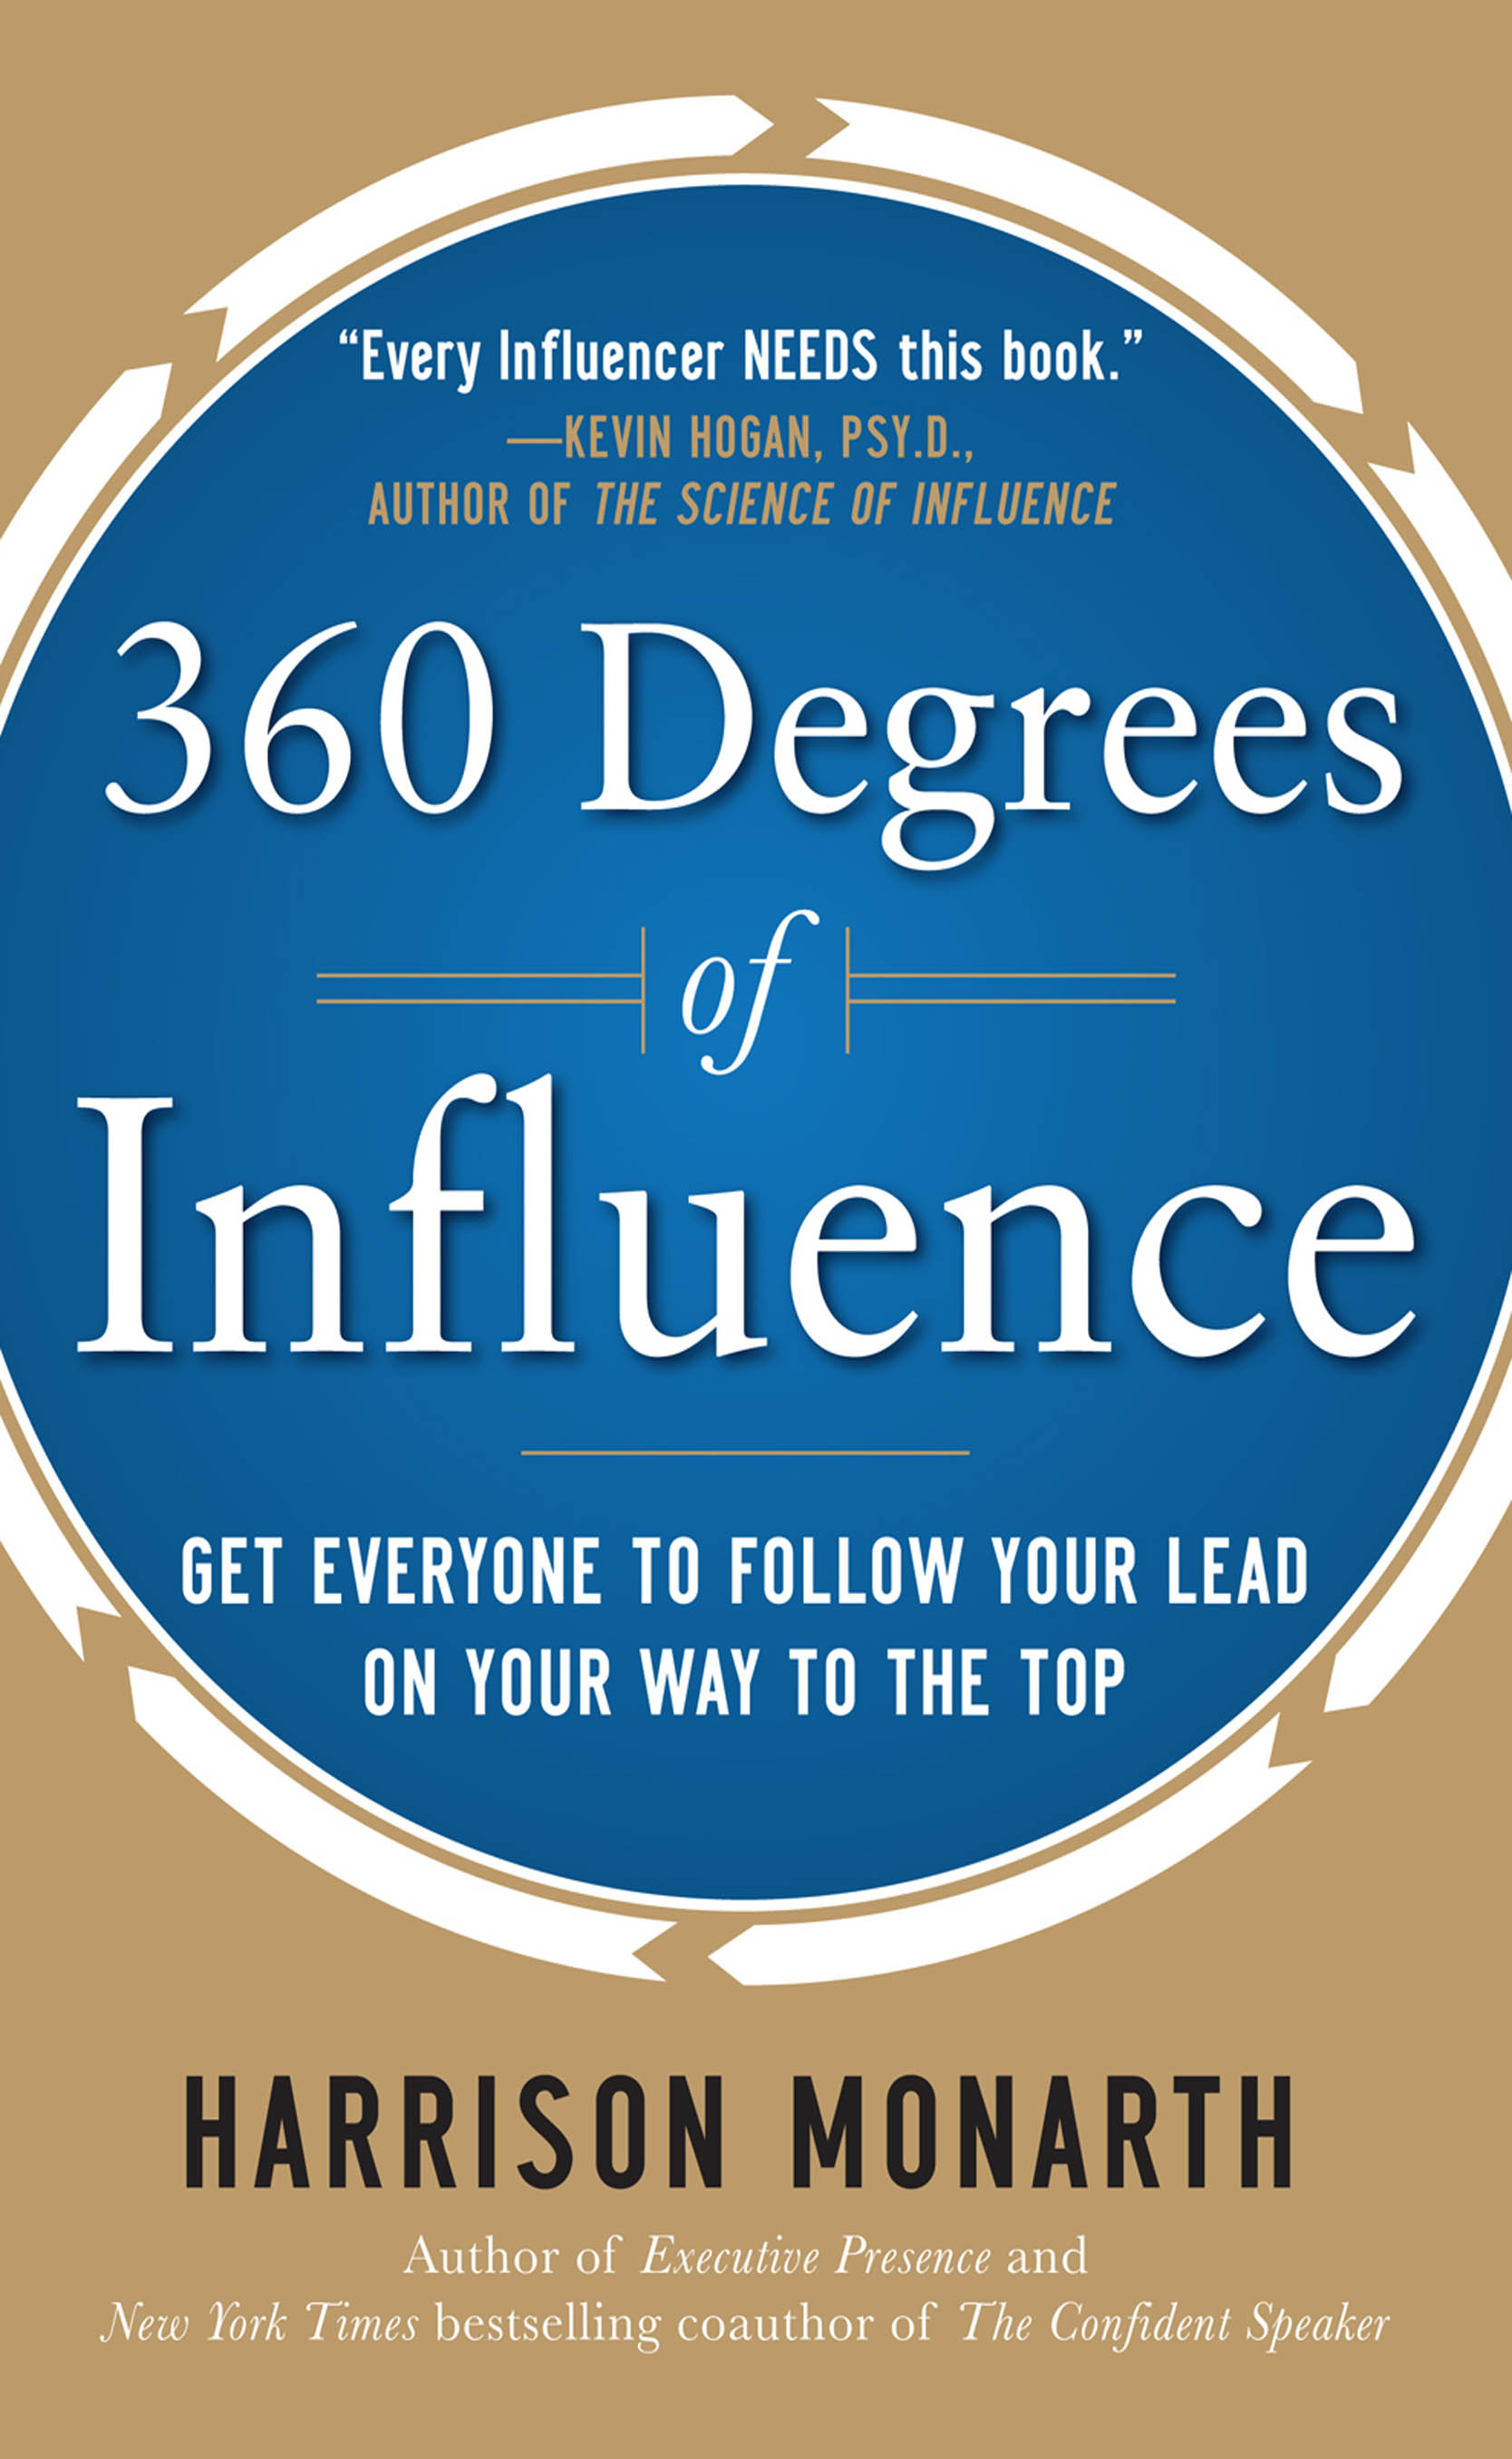 Download Ebook 360 Degrees of Influence: Get Everyone to Follow Your Lead on Your Way to the Top by Harrison Monarth Pdf